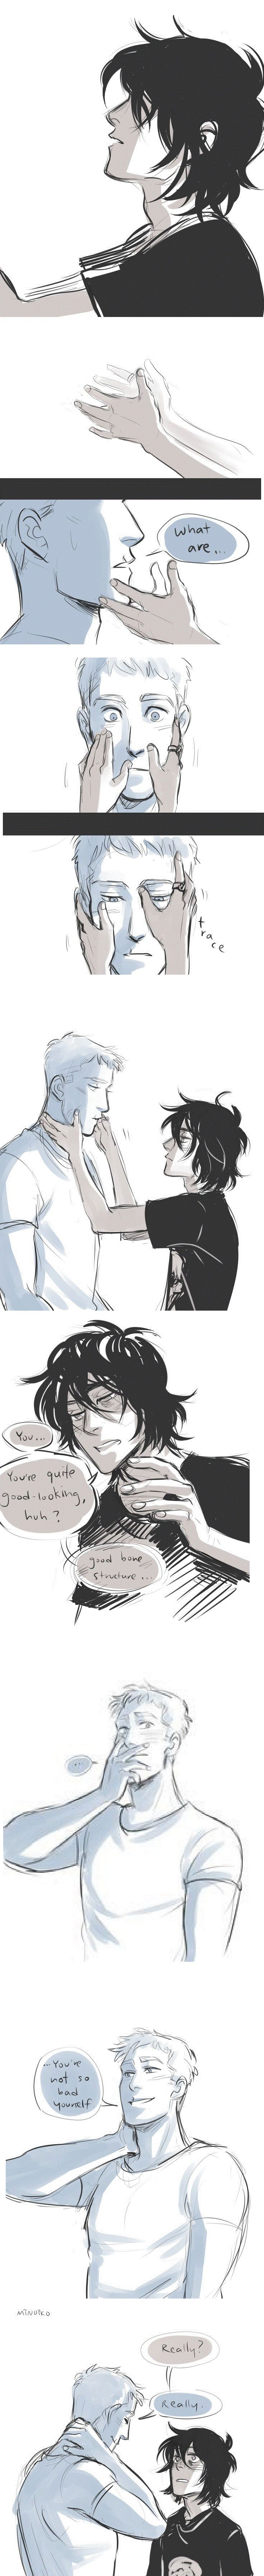 Blind!Nico Solangelo- aww<<its actually jason and nico not will and nico you can see jasons scar on his lip